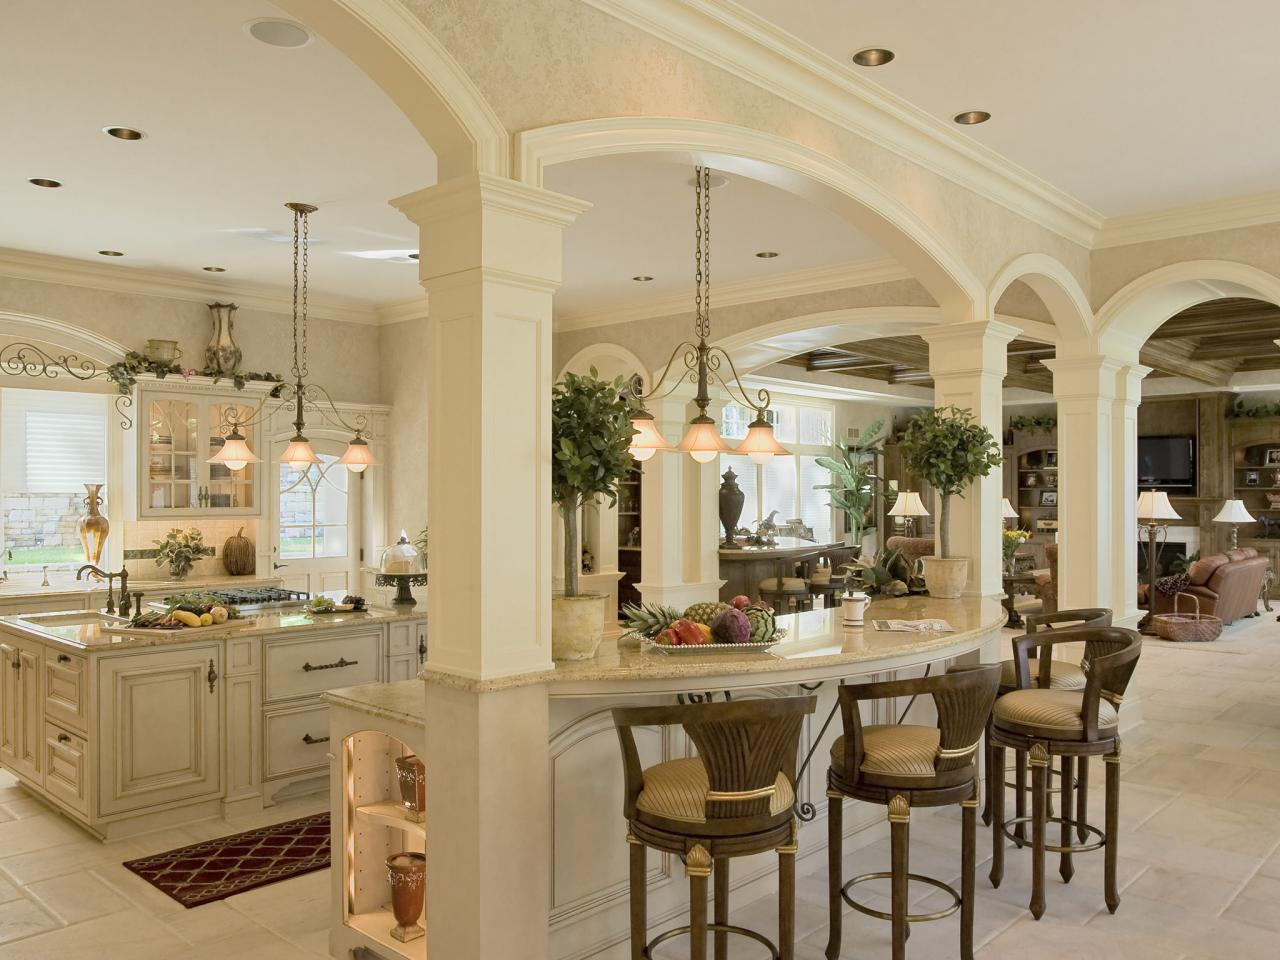 French country kitchens - French Kitchen Design